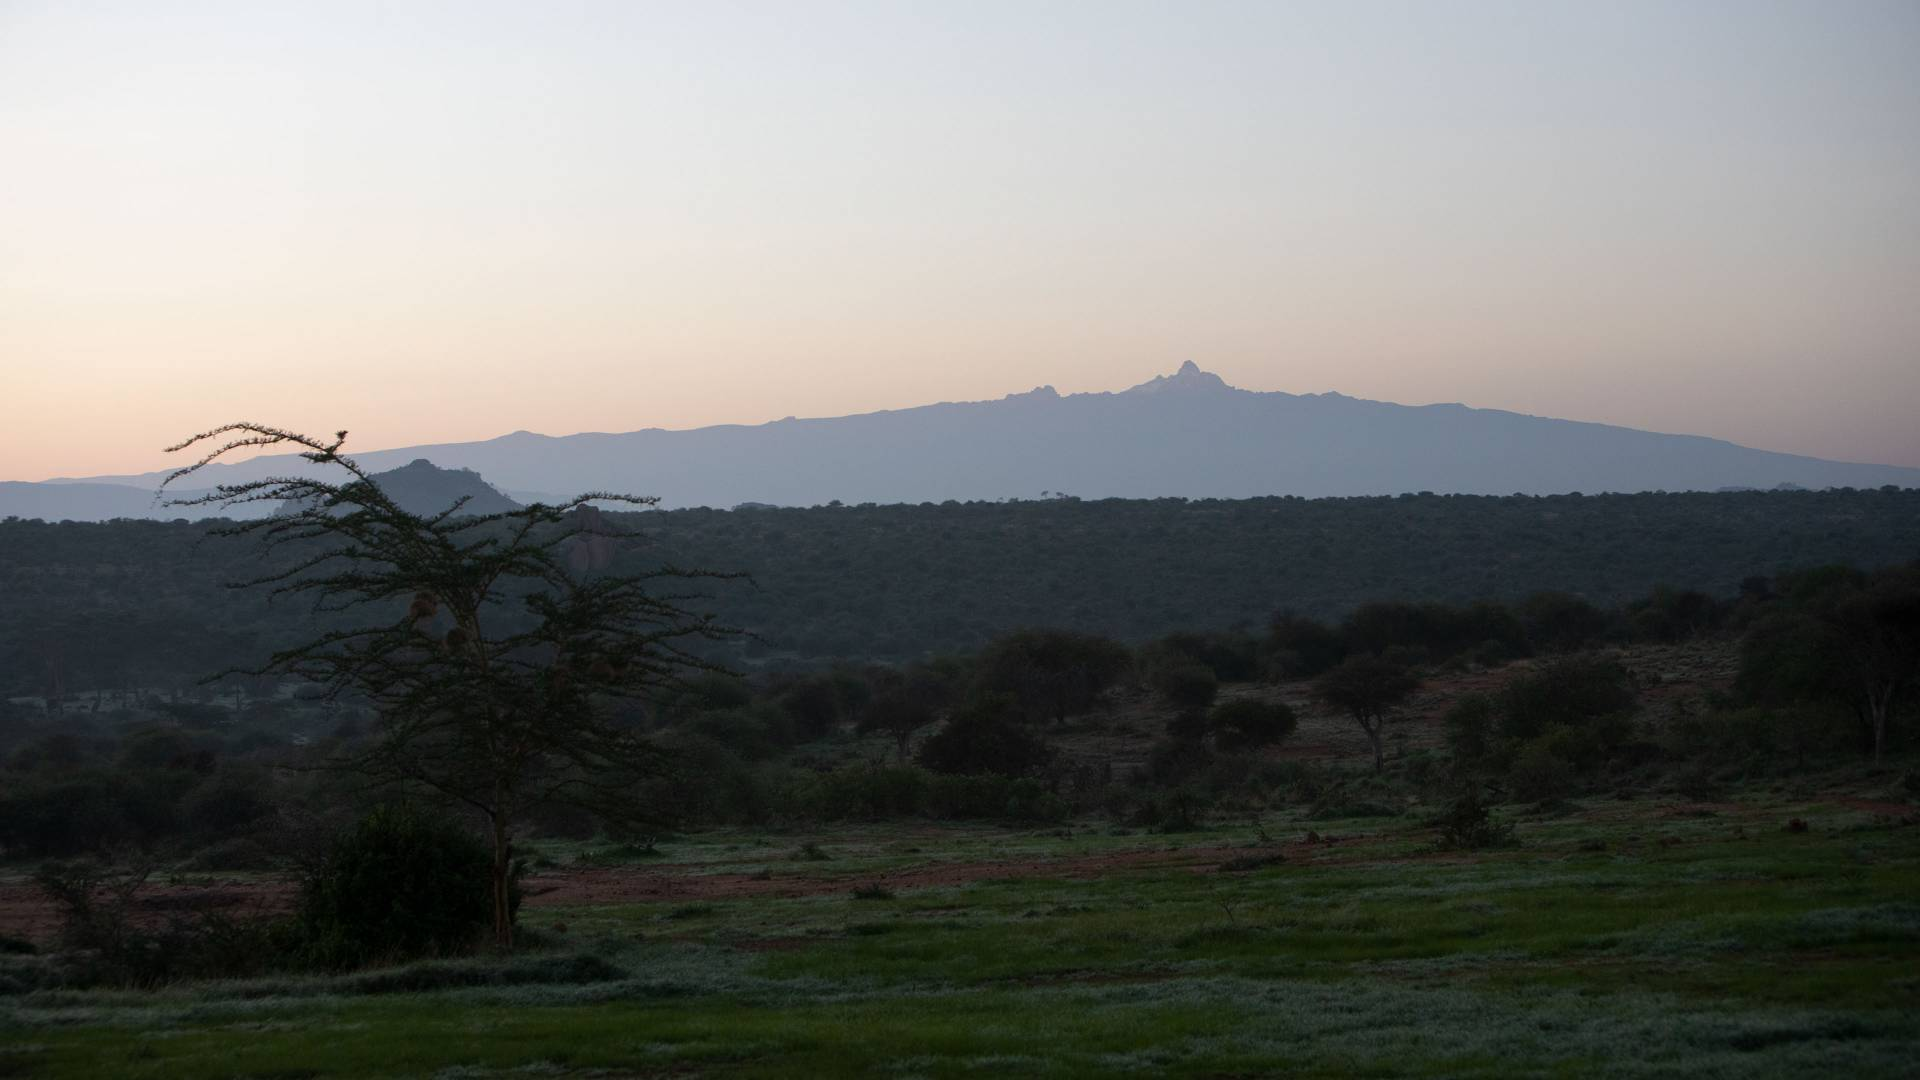 Sunrise with Mt. Mukenya in the distance